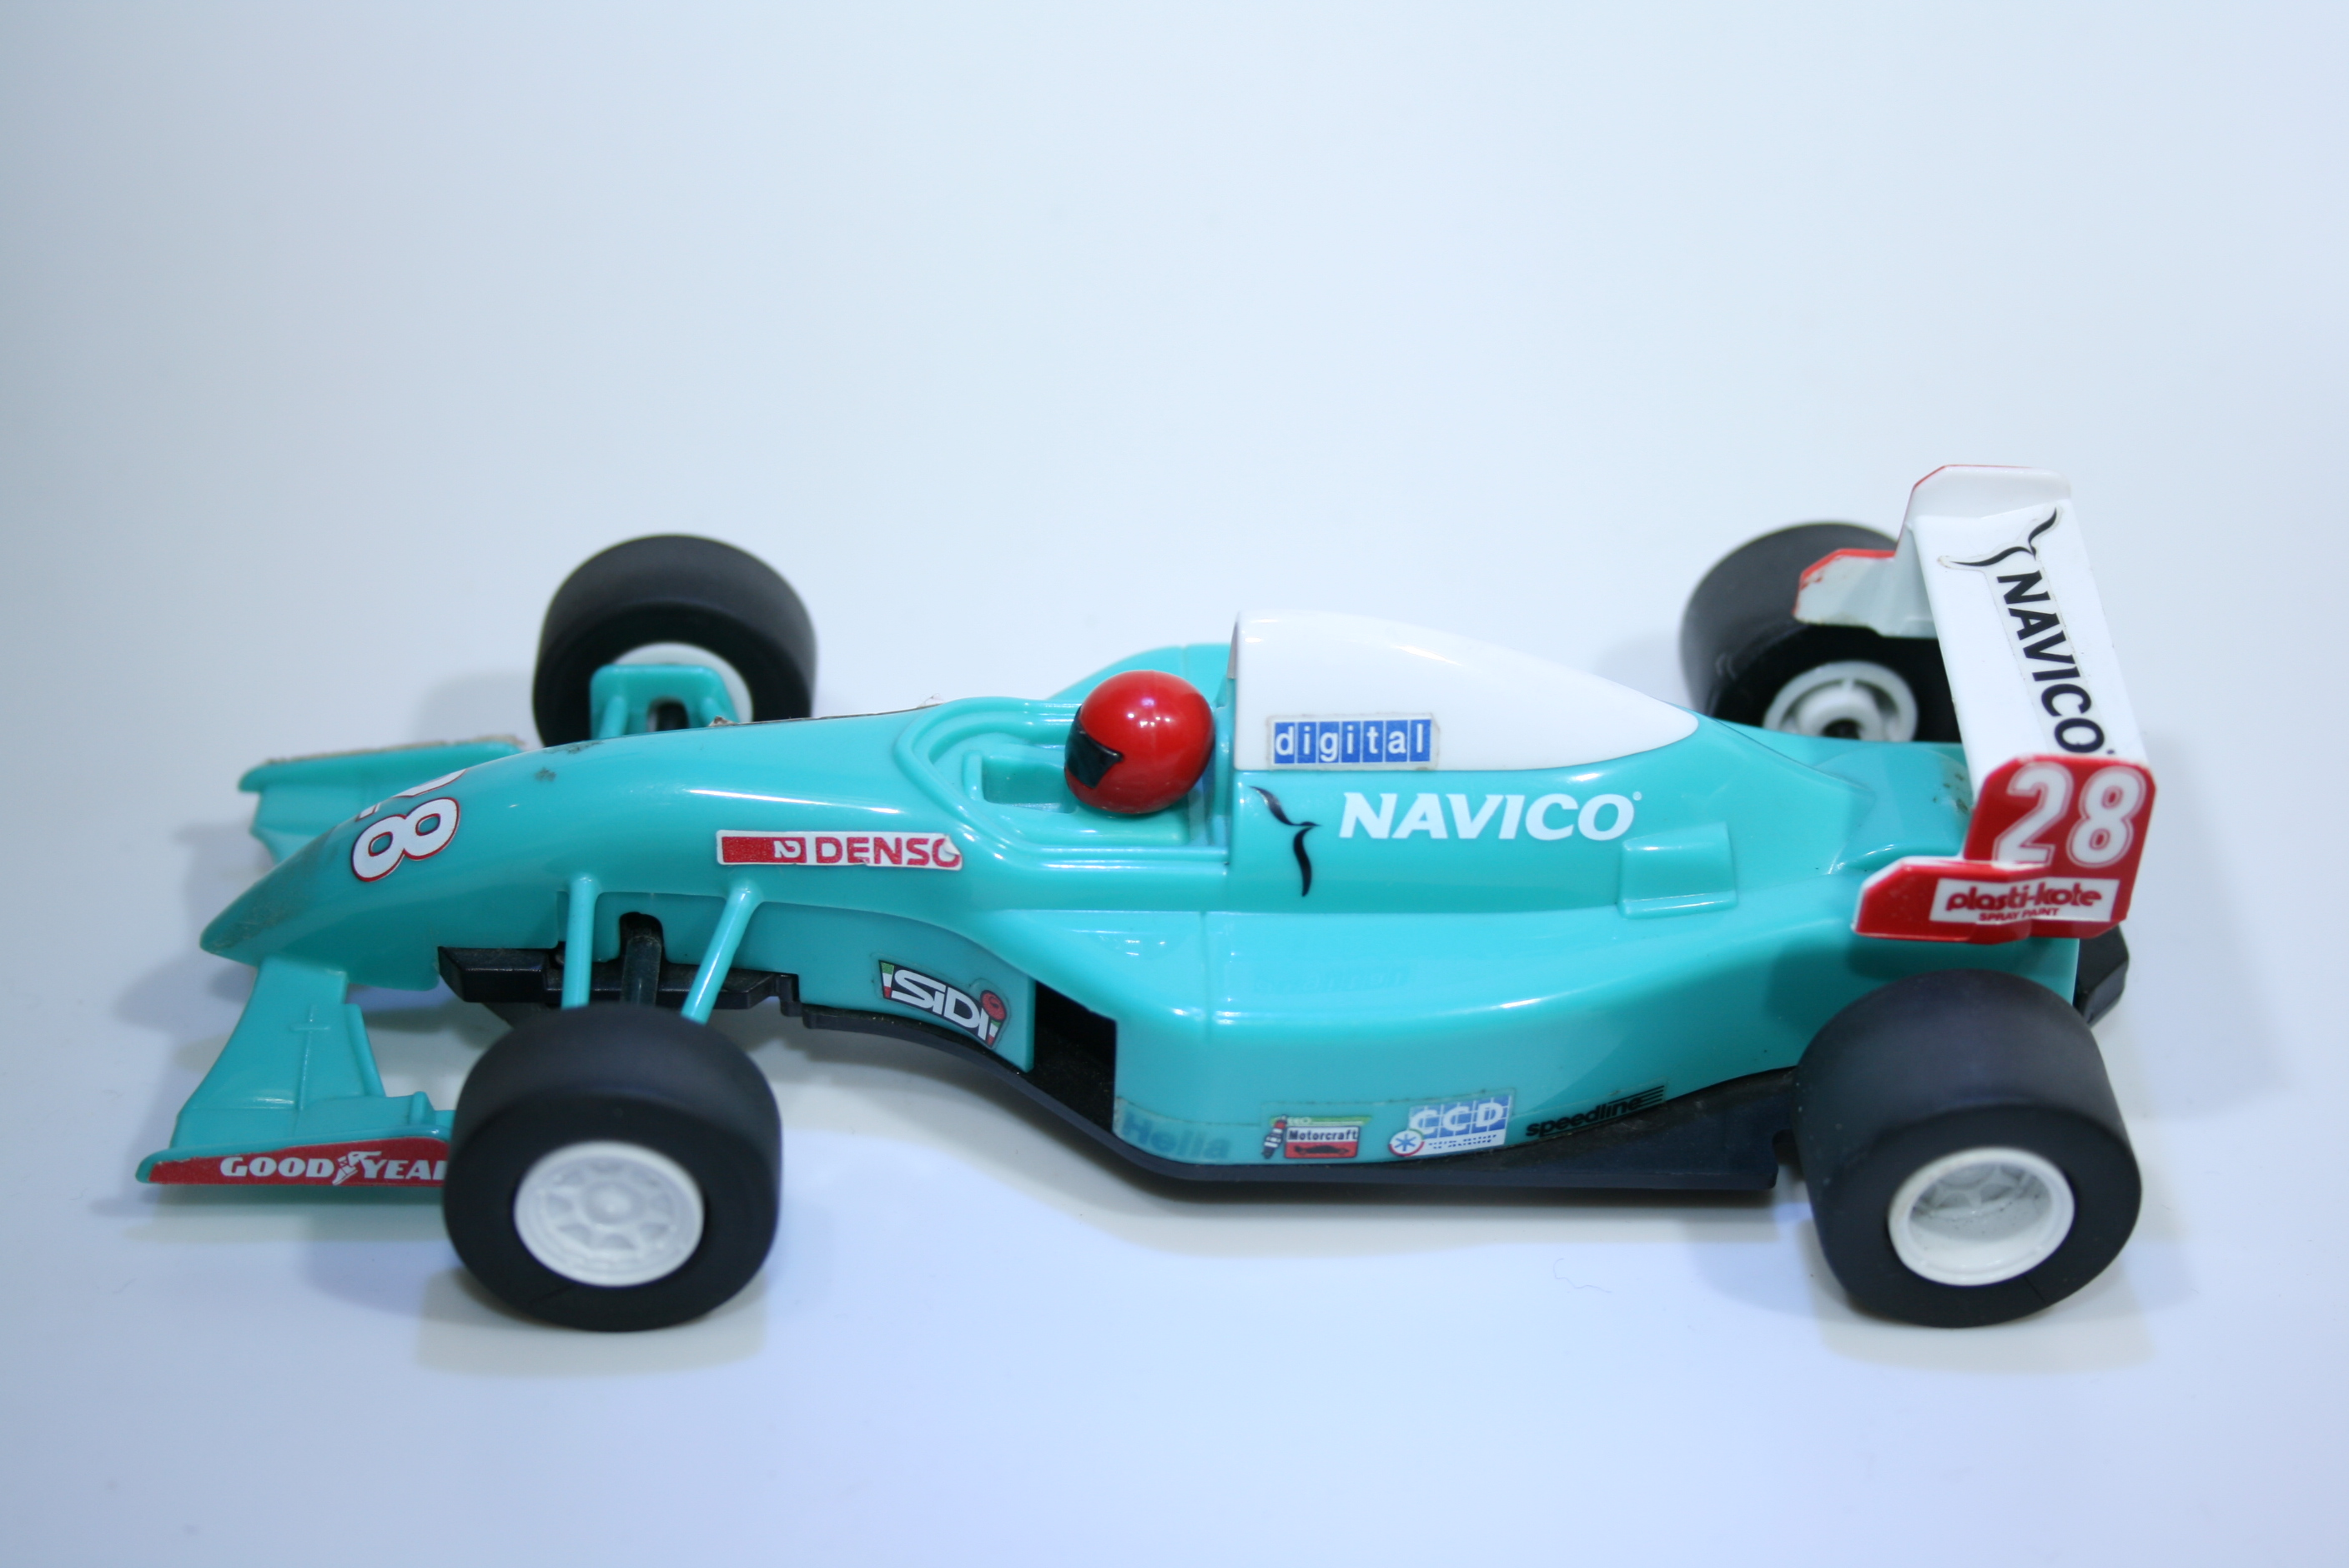 254 Scalextric Team Car Navico C613 1999